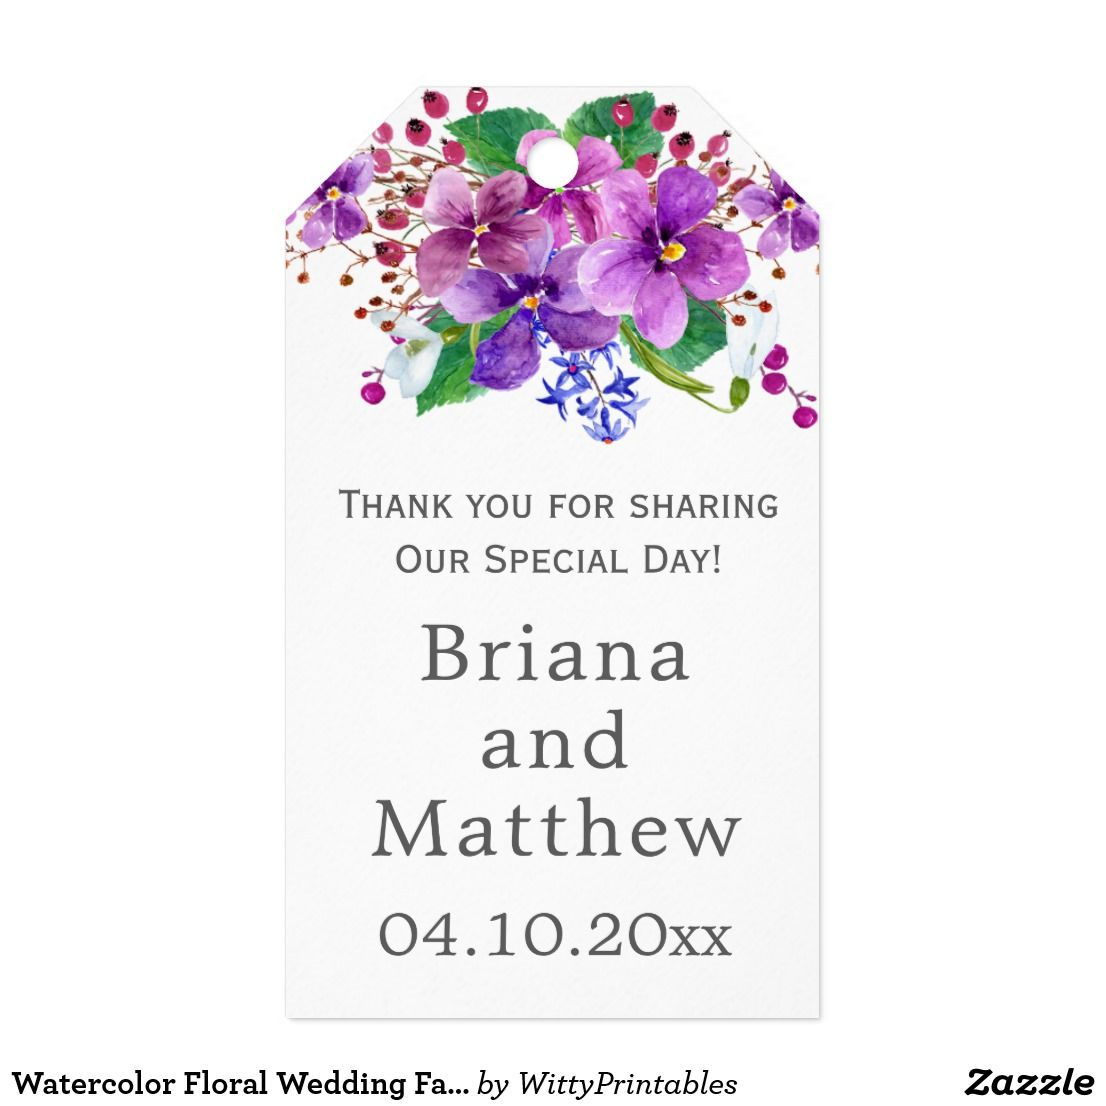 Watercolor Floral Wedding Favors Gift Tag | Floral wedding, Favors ...